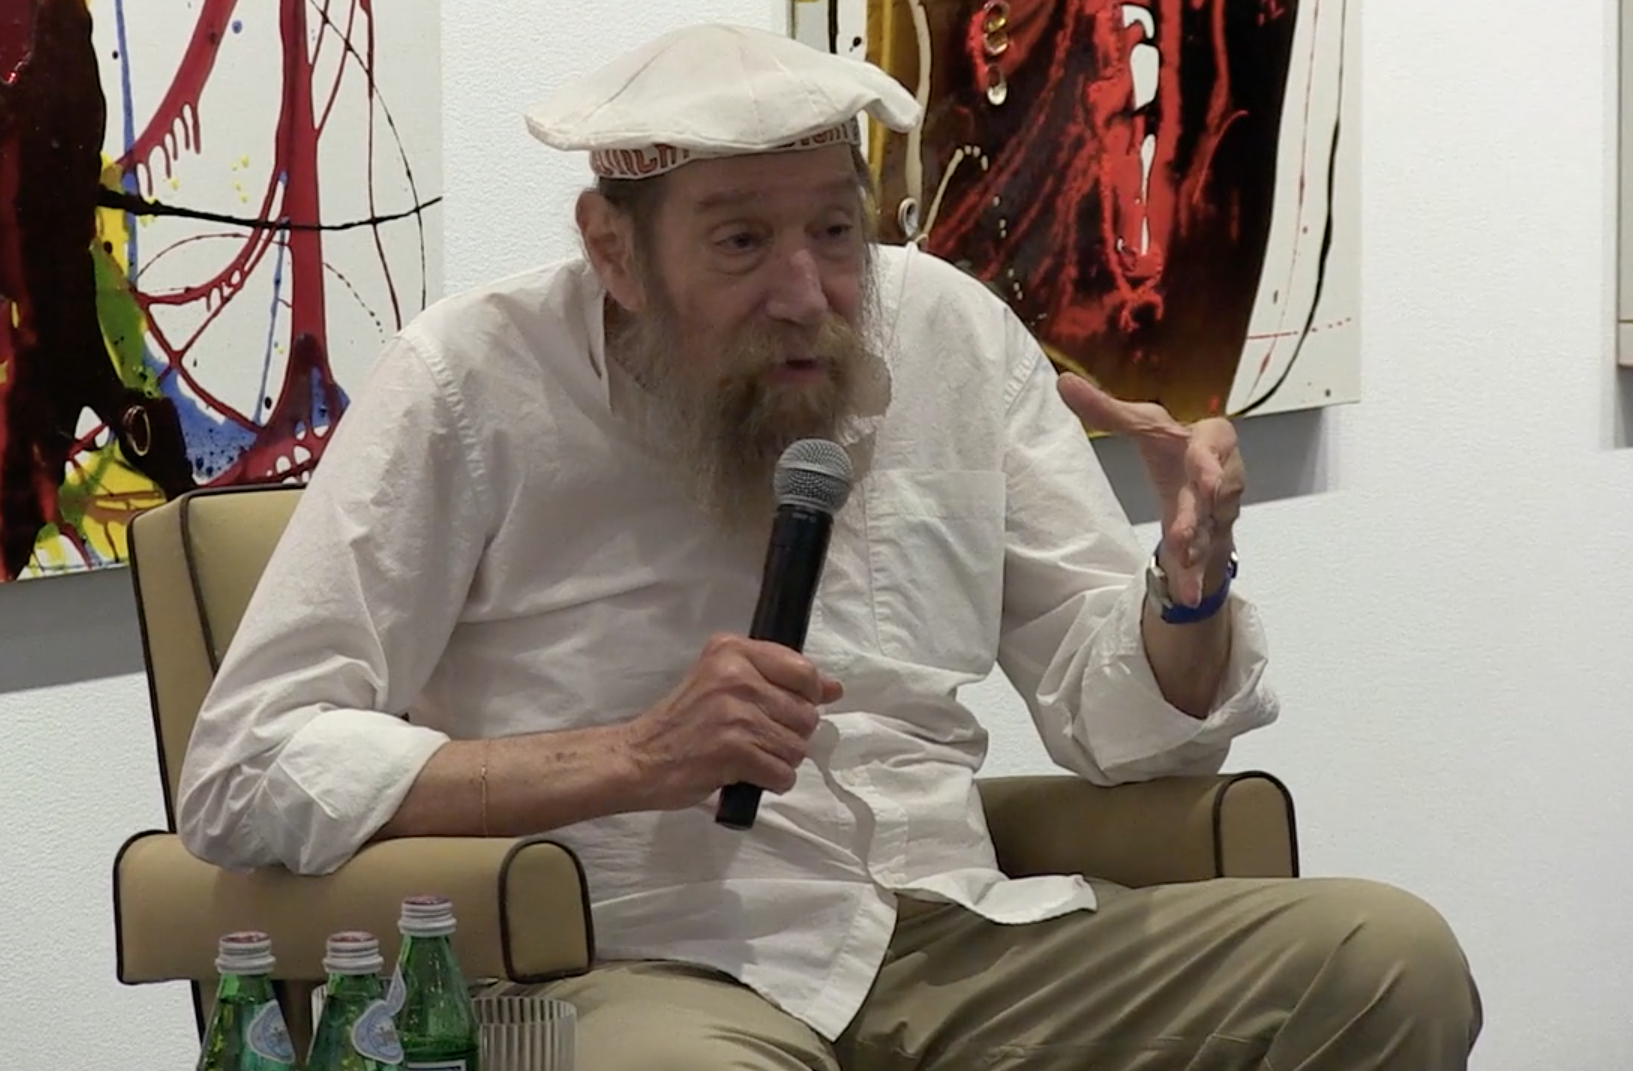 FLAG Art Foundation Spotlights Artist Lawrence Weiner at Tenth Anniversary Event